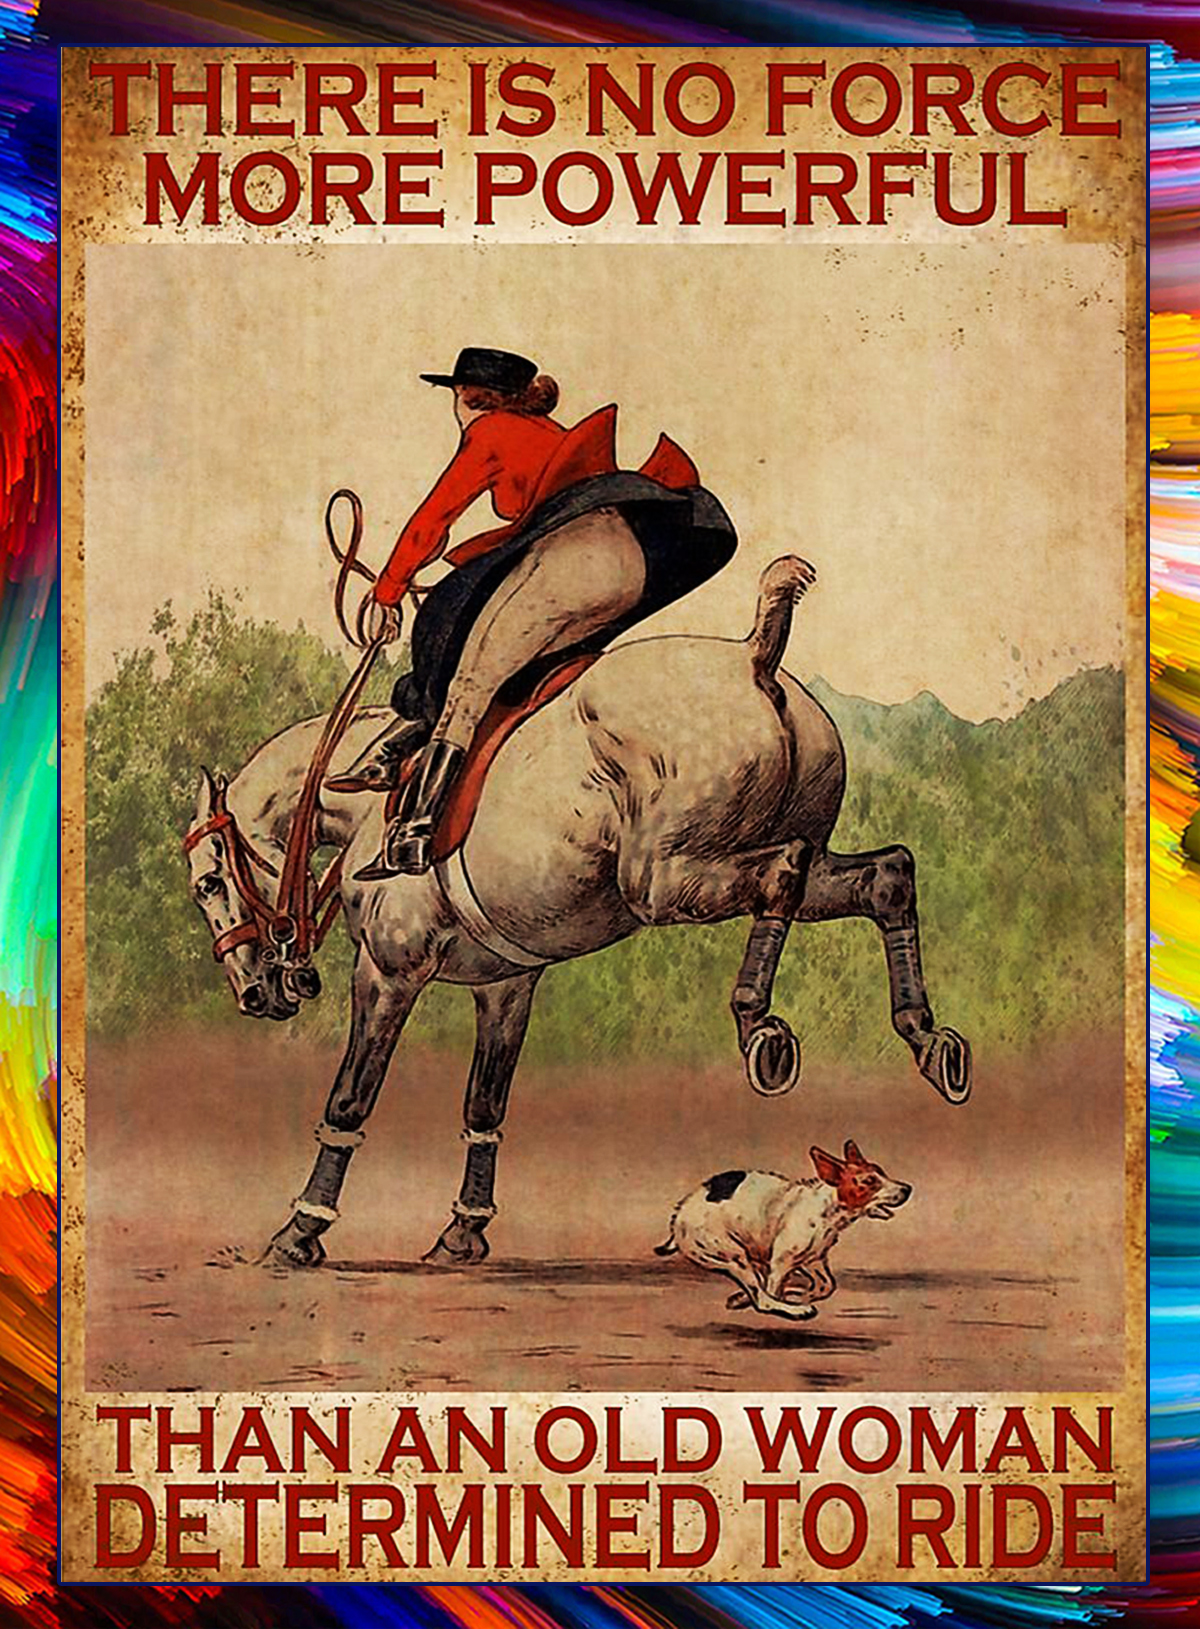 Horse There is no force more powerful than an old woman determined to ride poster